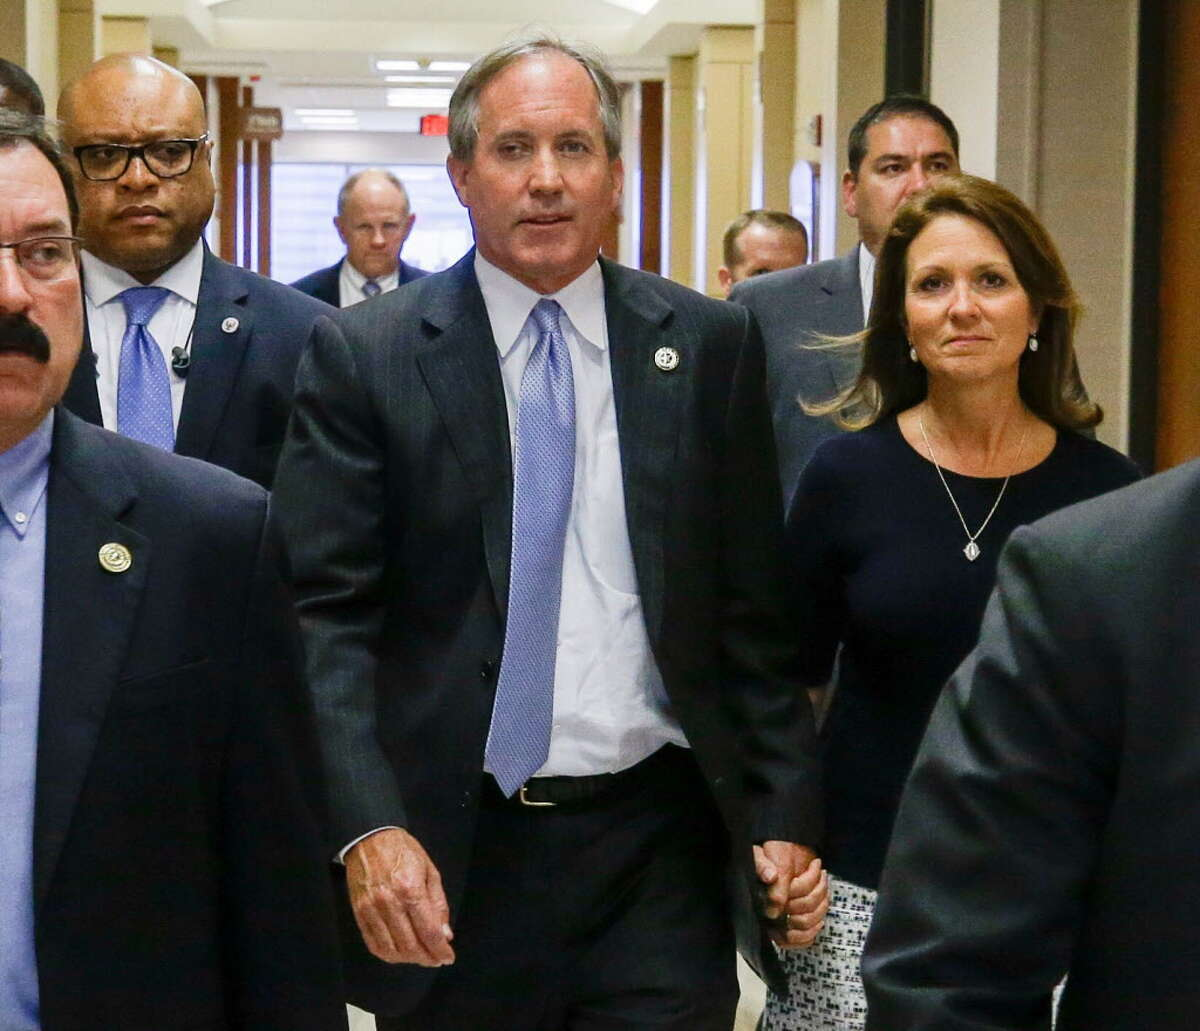 Texas Attorney General Ken Paxton and his wife Angela Paxton, arrive for a hearing in the Harris County Criminal 177th District Court of Judge Robert Johnson Thursday, July 27, 2017.